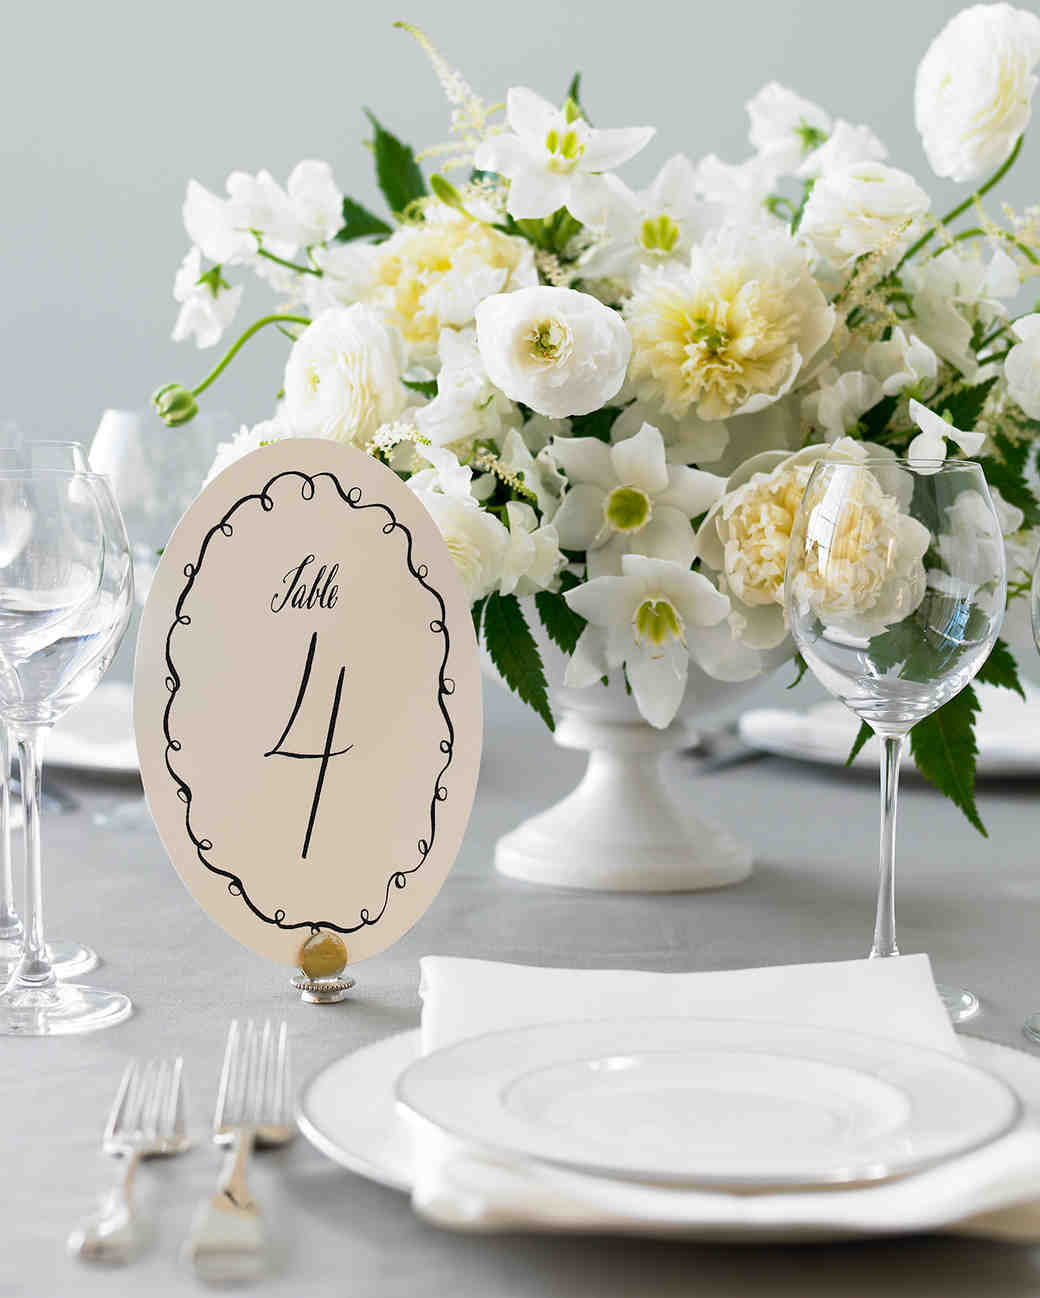 diy-table-numbers-classic-card-f08-0715.jpg